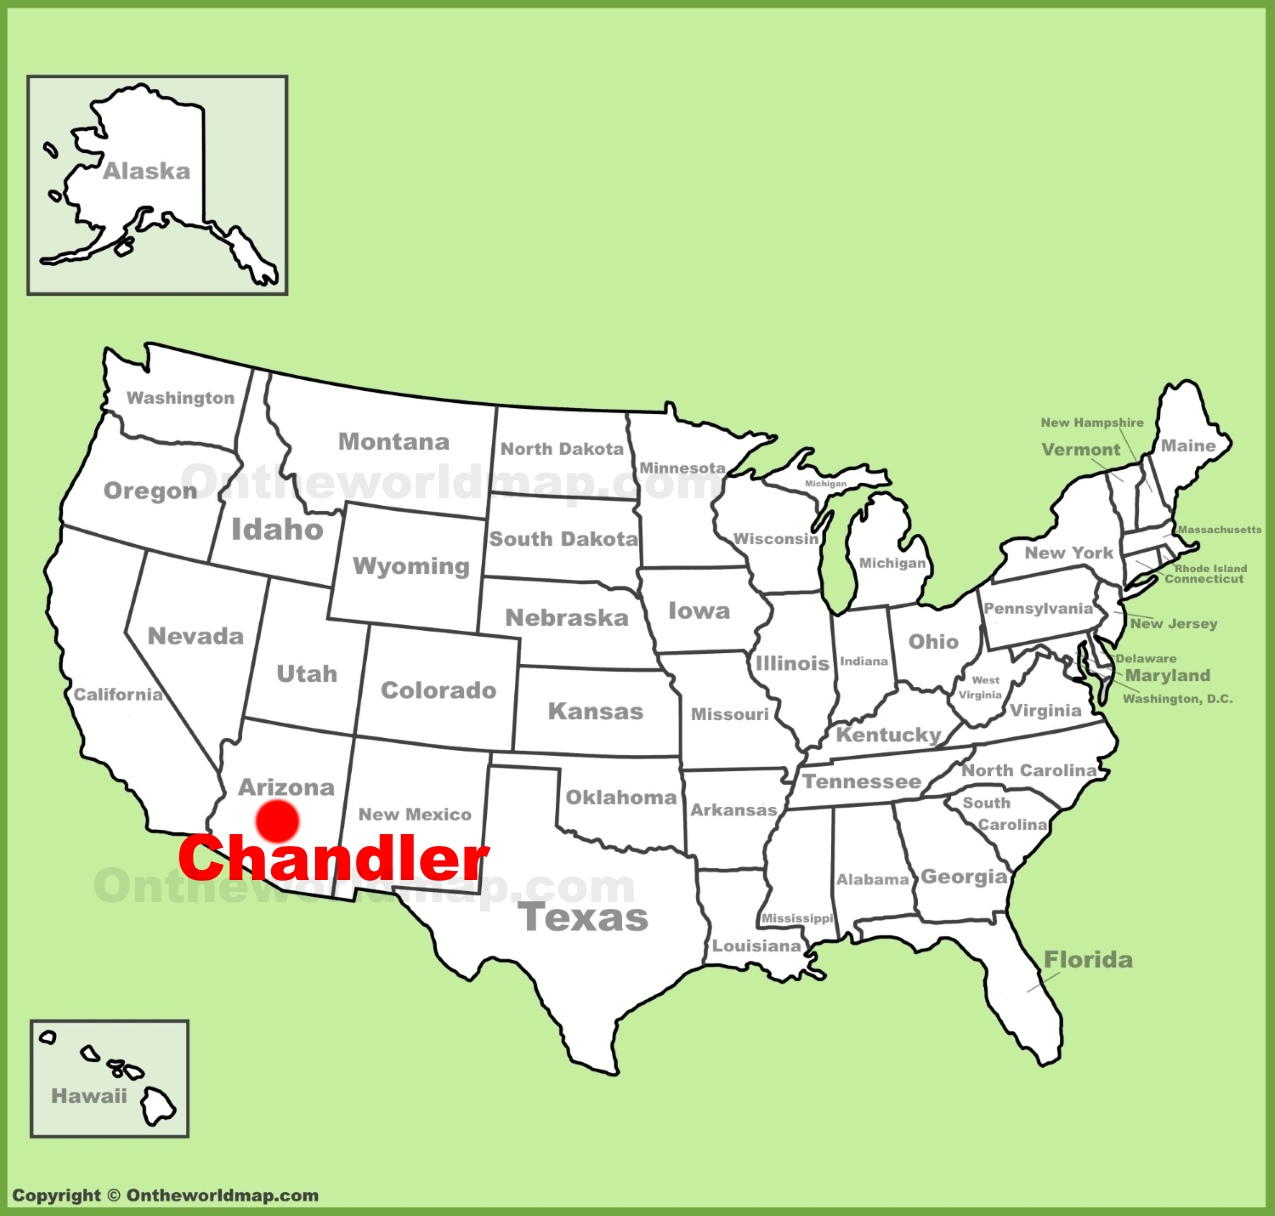 Chandler location on the US Map